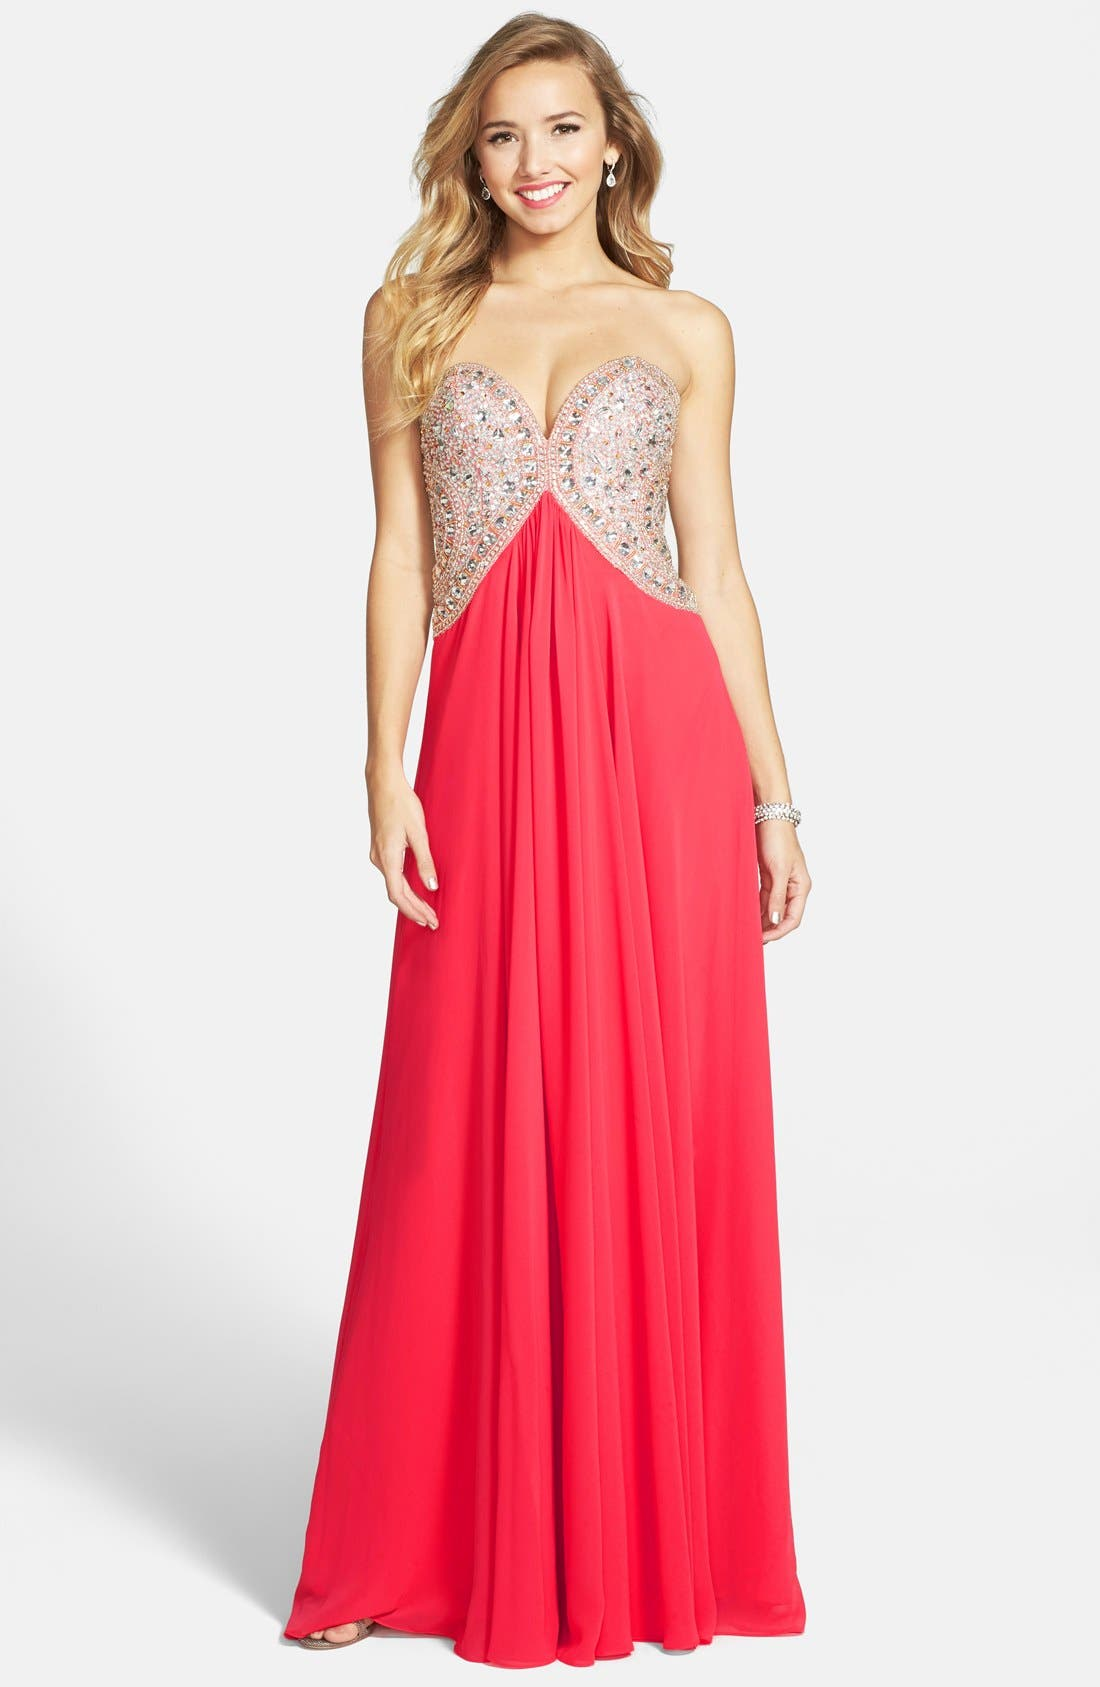 Main Image - Terani Couture Embellished Bodice Strapless Chiffon Gown